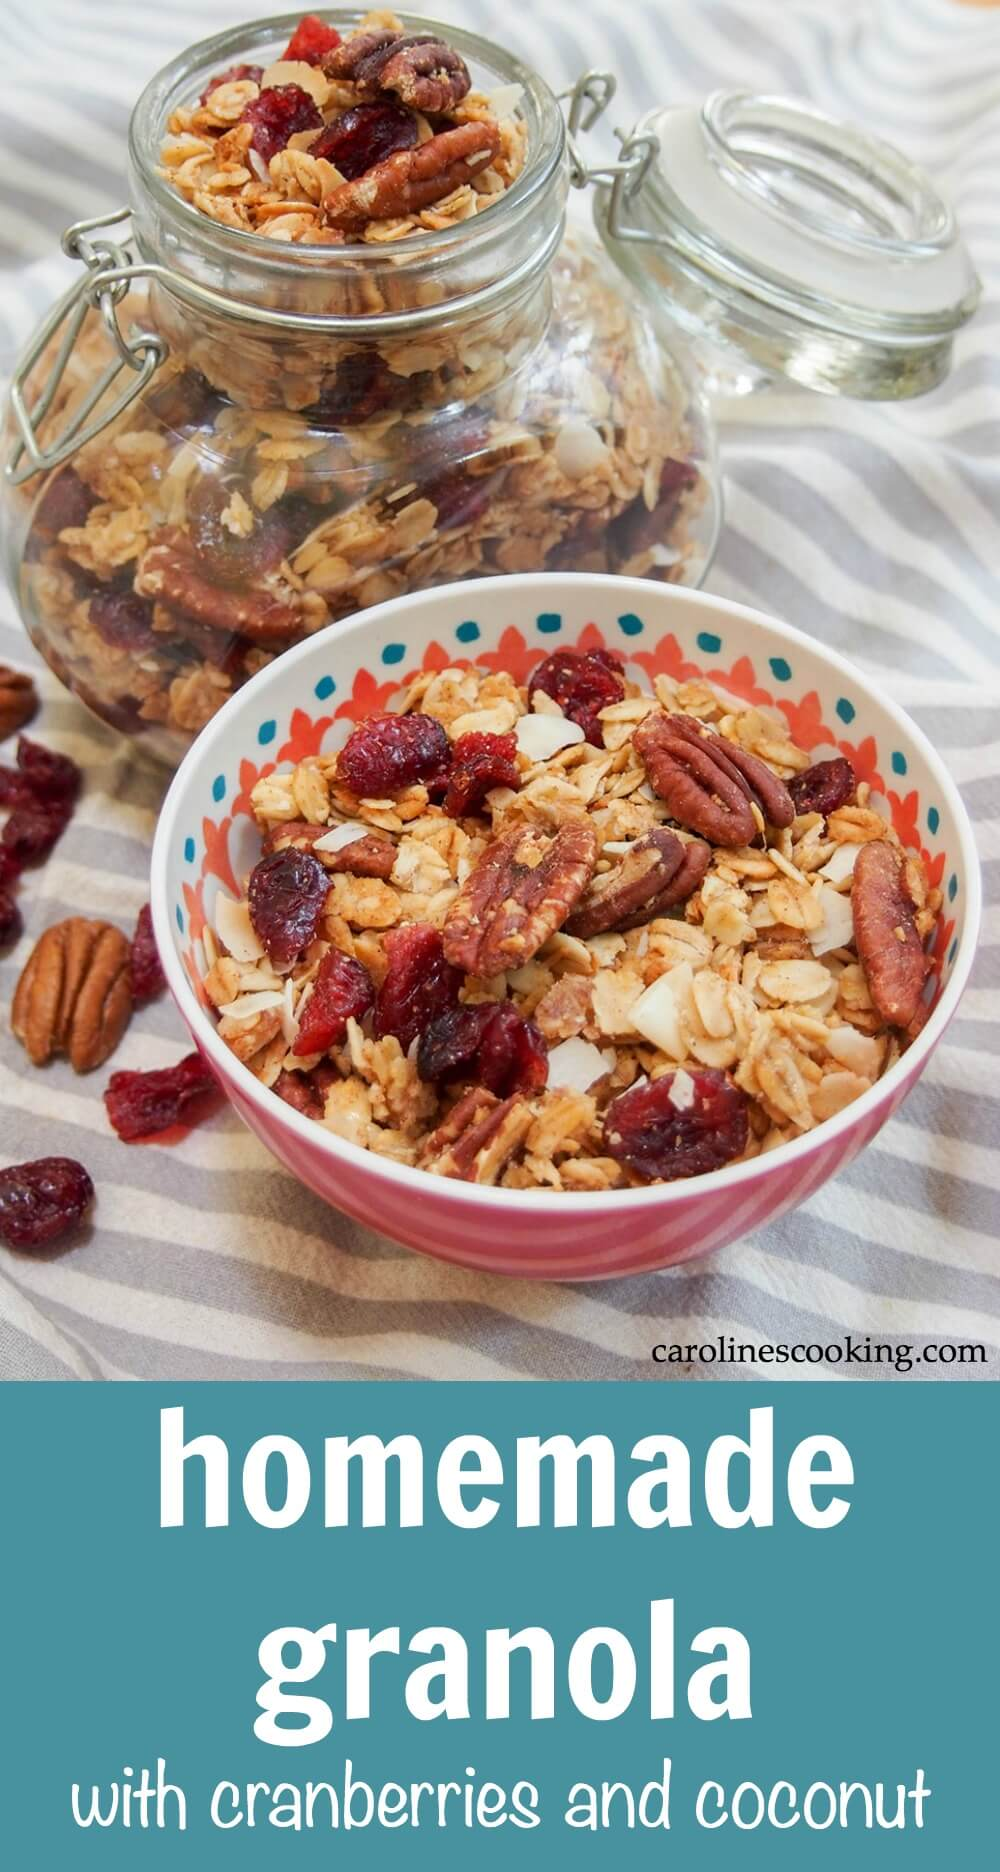 It's easier than you might think to make granola (and healthier). This easy homemade granola recipe is naturally sweetened and loaded up with cranberries, pecans and coconut. Crunchy delicious! #granola #healthy #breakfast #cranberry #cranberryweek